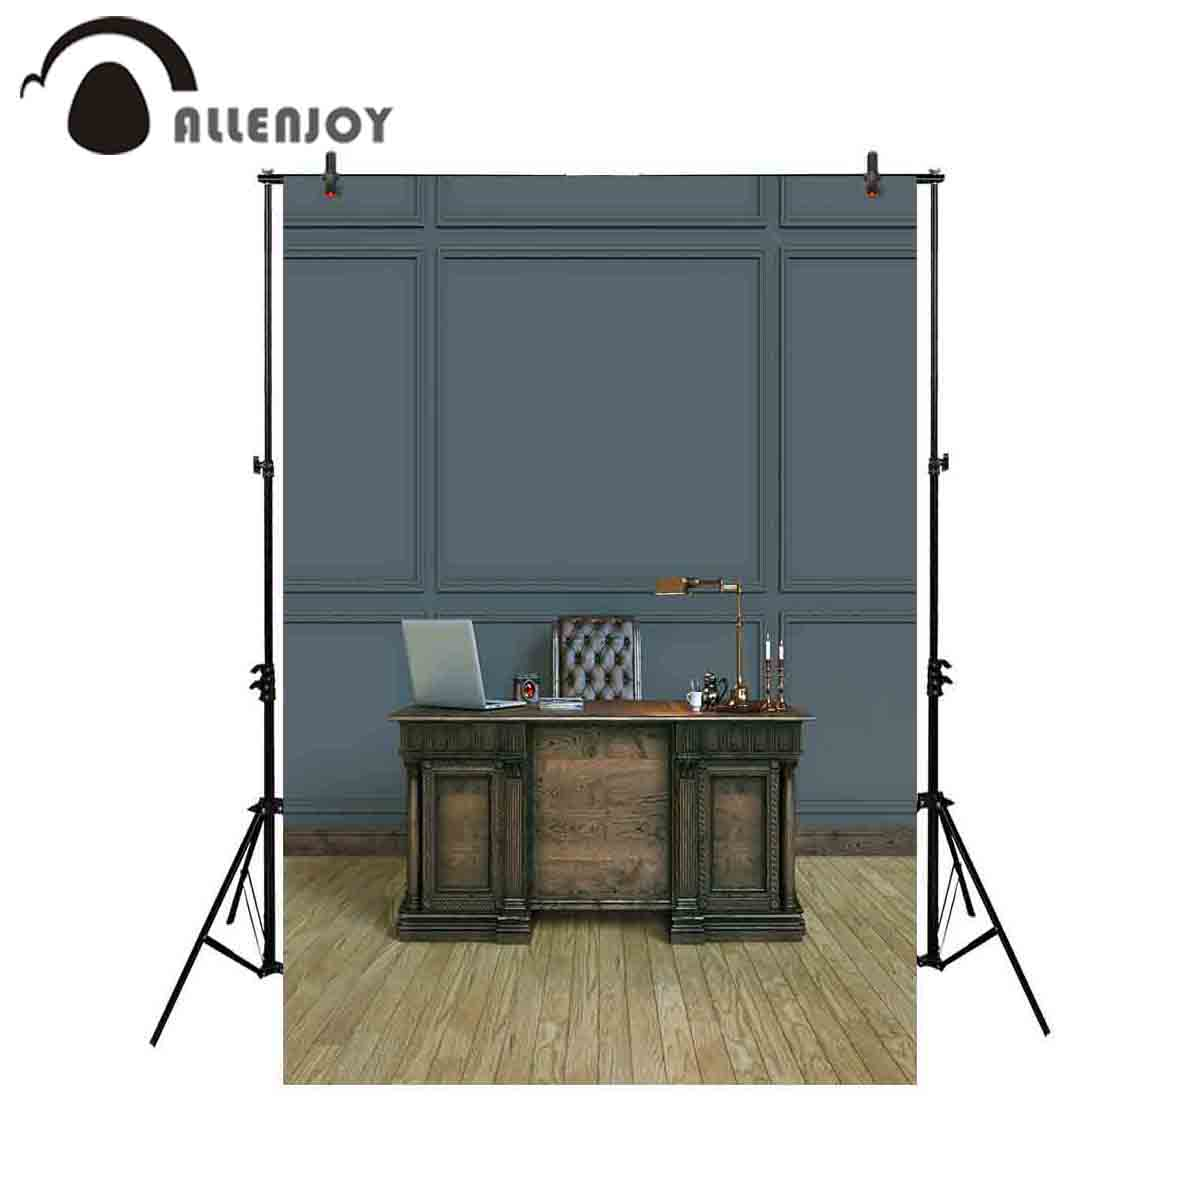 office backdrop classic luxury shoot photocall photobooth prop fabric wholesale allenjoy